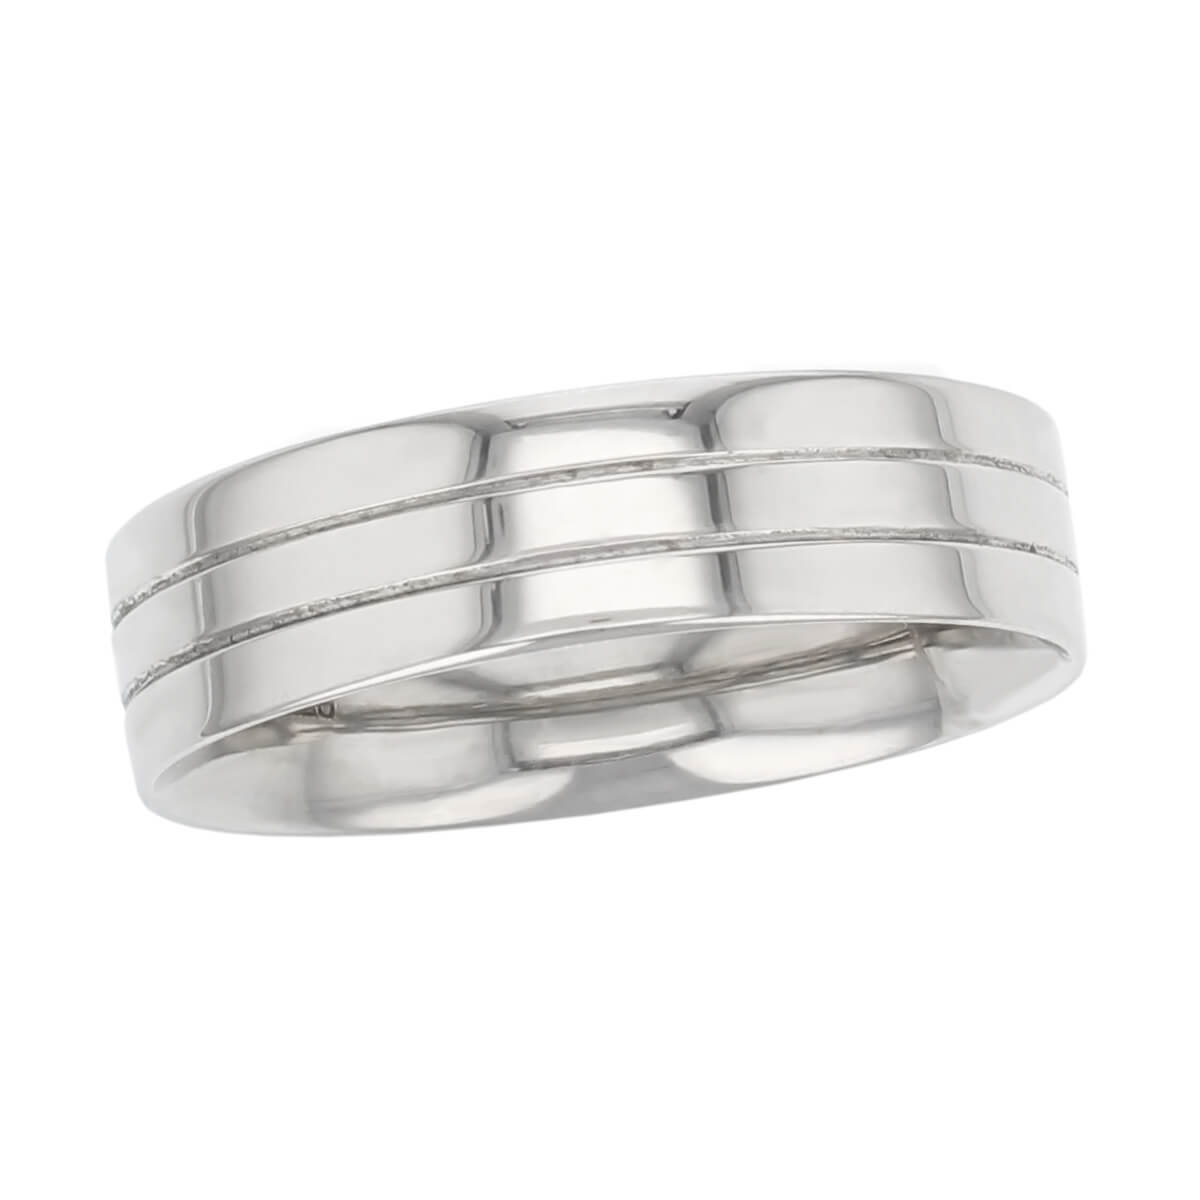 double groove polished wedding ring pattern, men's, gents, made by Faller